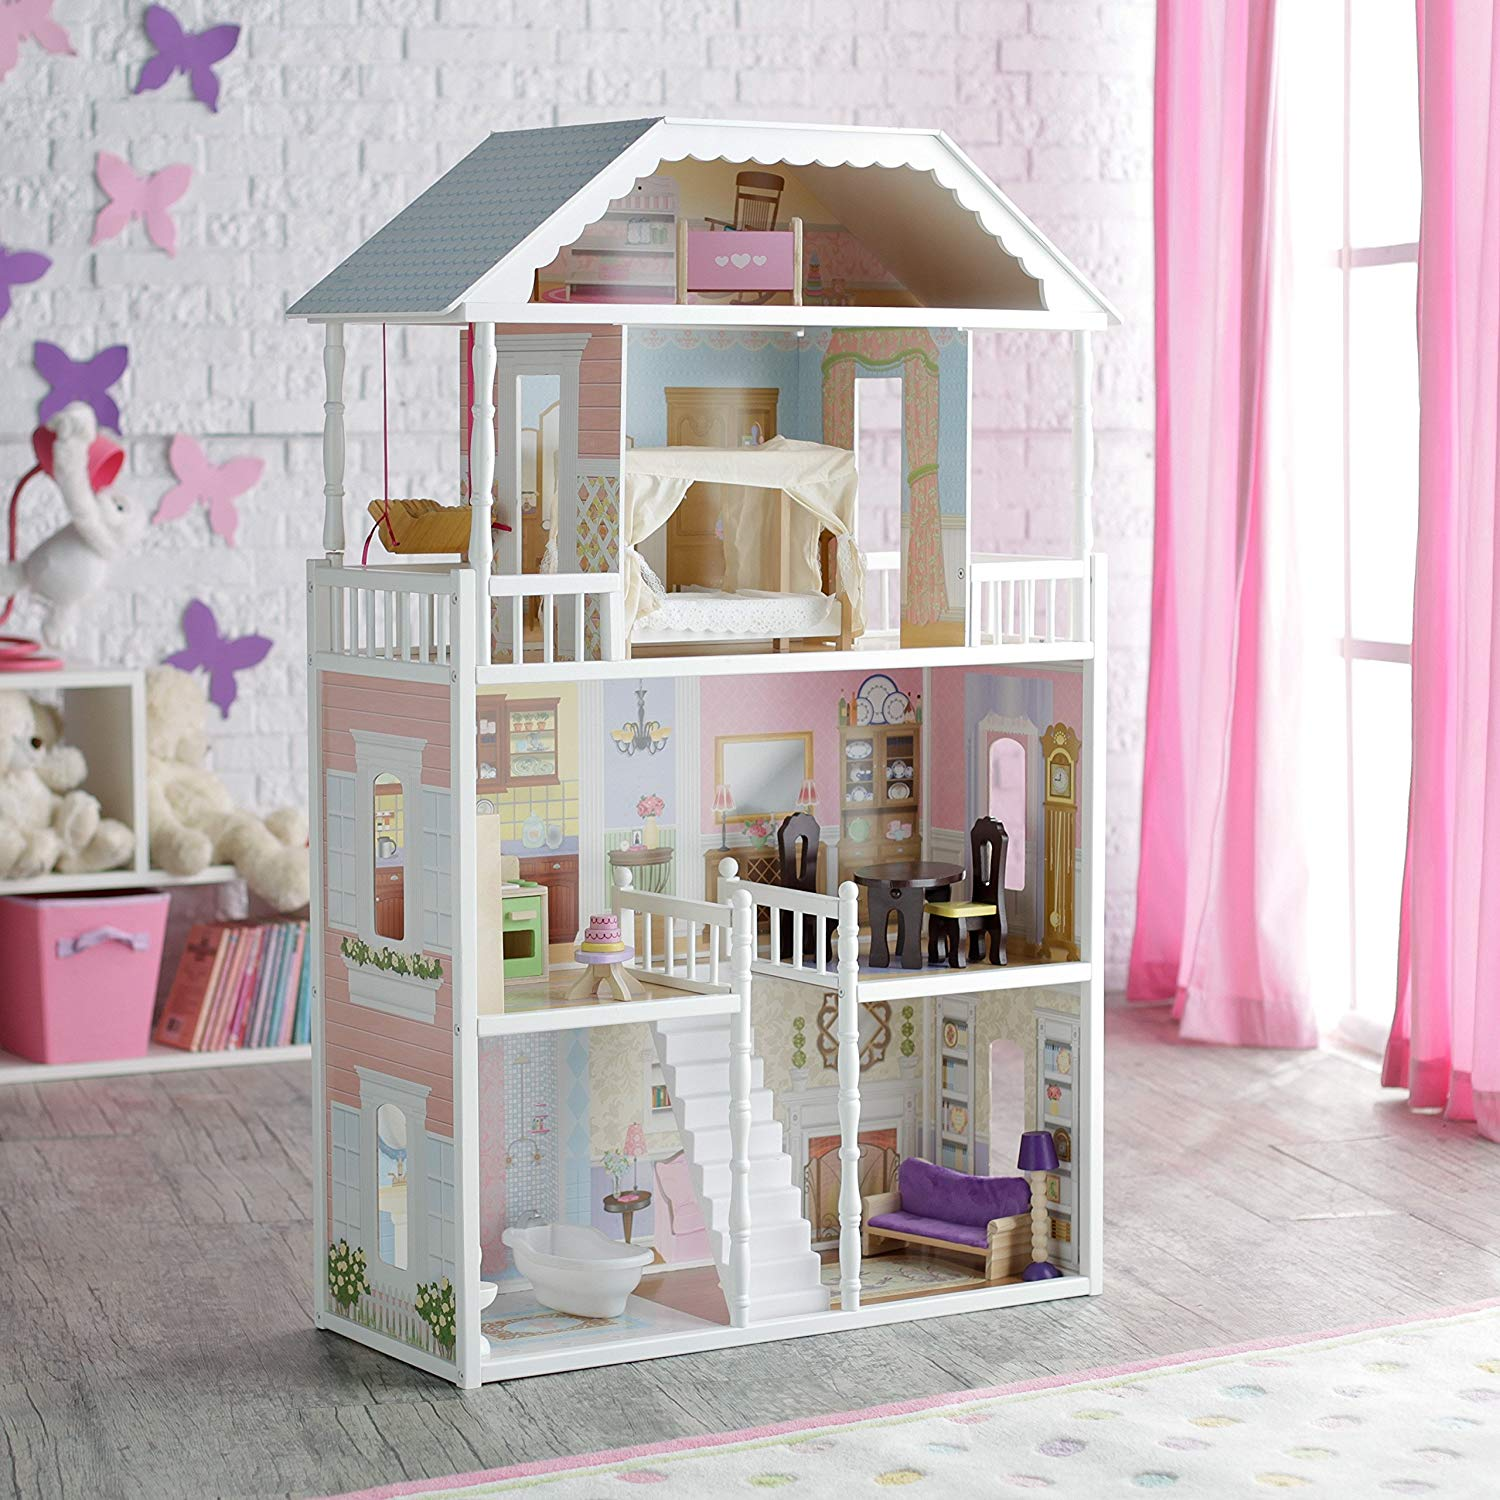 10 Best Dollhouses For Girls Brainz